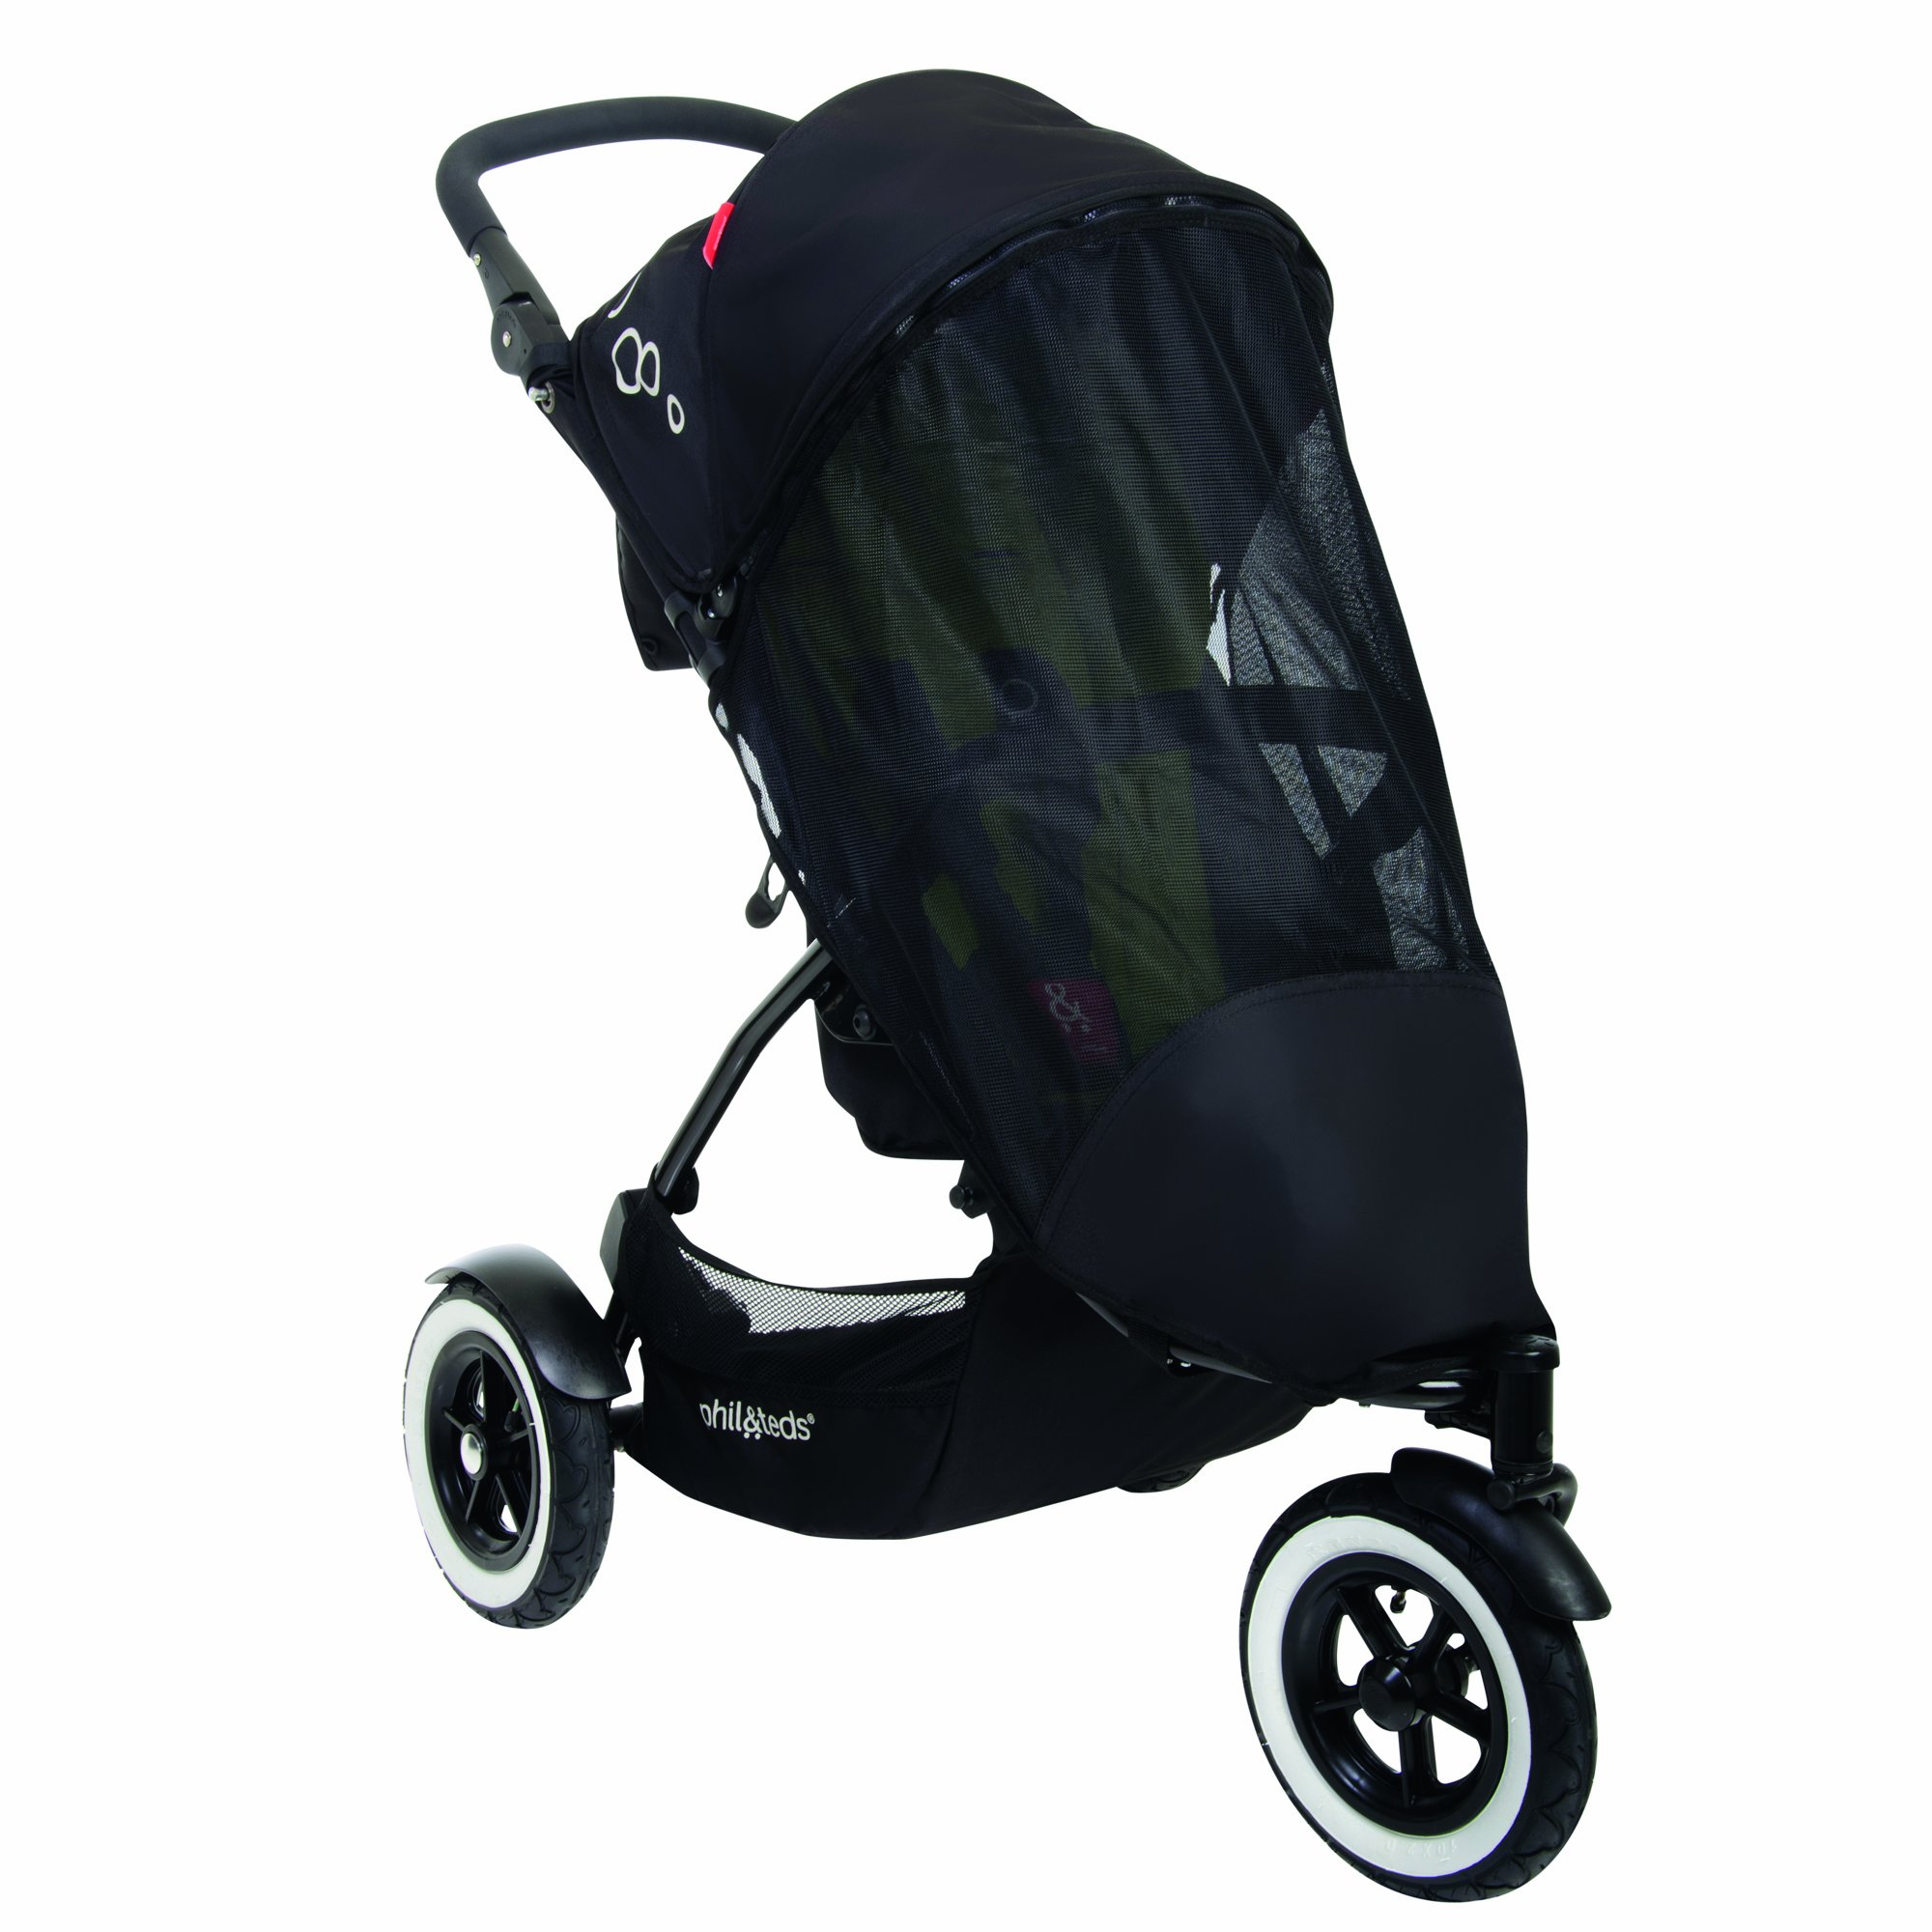 phil&teds UV Sunny Days Mesh Cover for Single Dot Stroller, Black by phil&teds (Image #1)